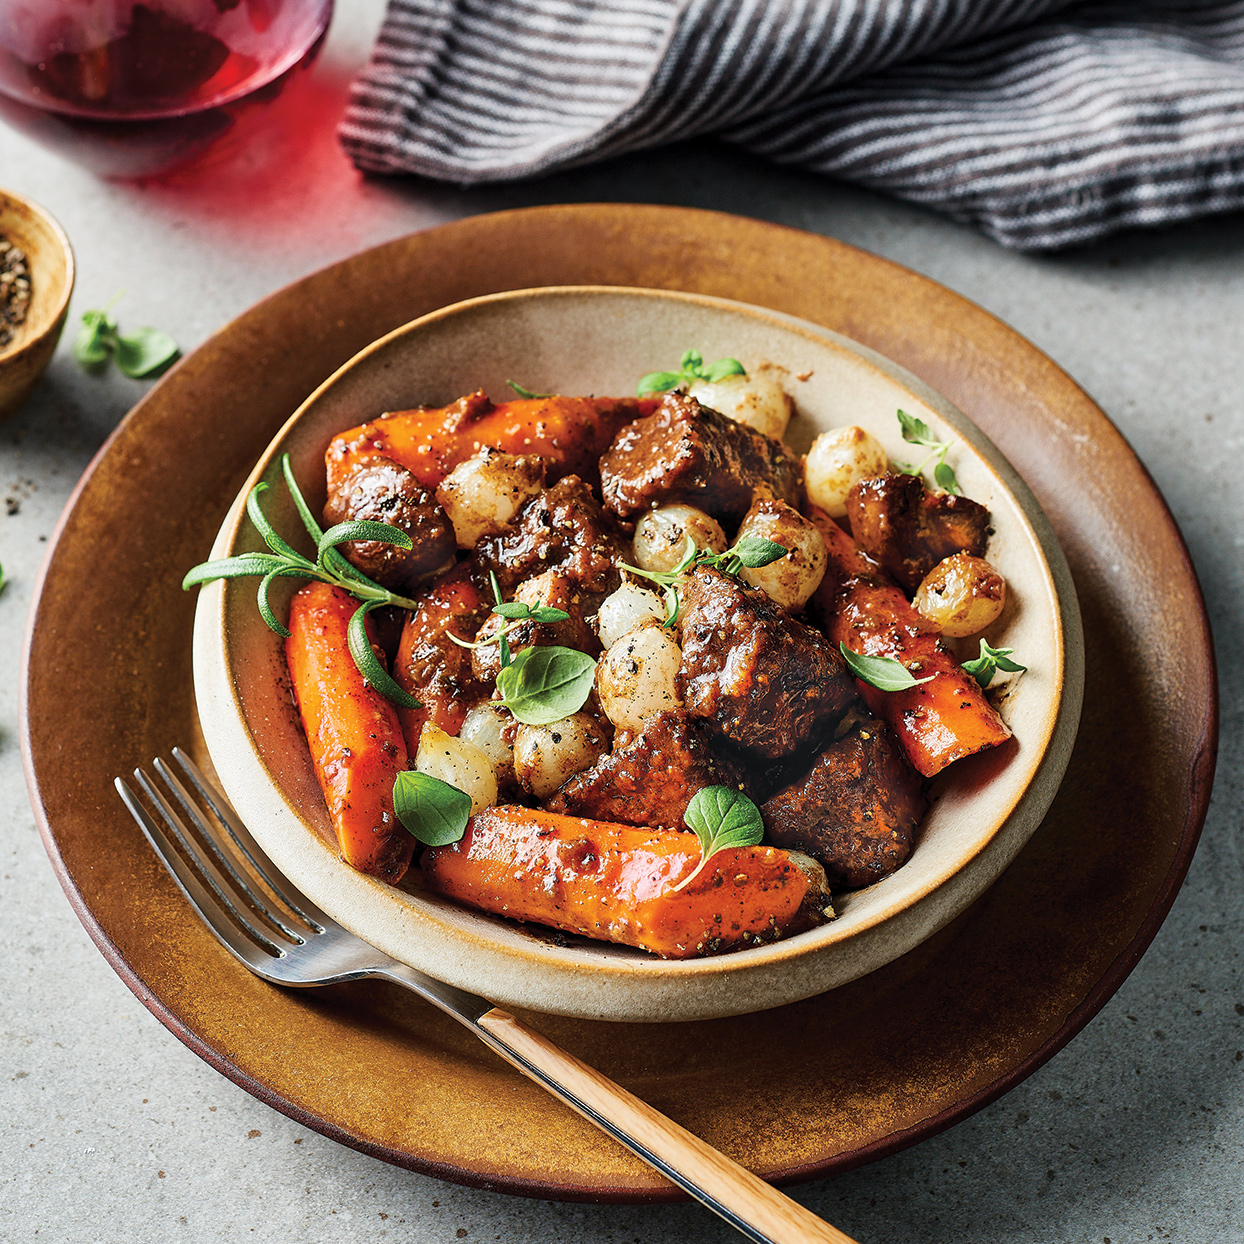 Slow-Cooker Herb & Mushroom Braised Beef Trusted Brands